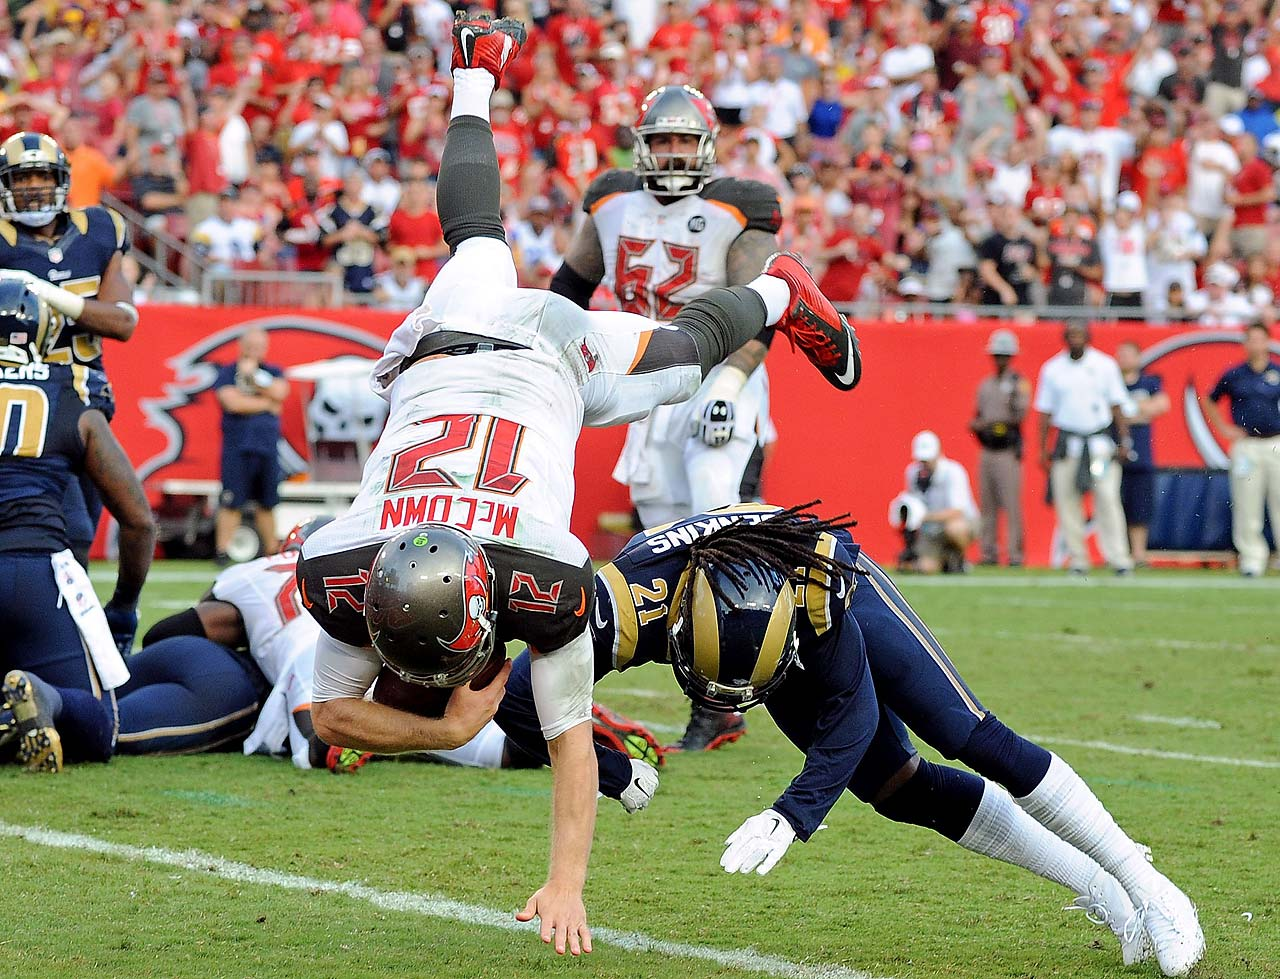 Josh McCown of the Tampa Bay Buccaneers flips into the end zone to score a touchdown against the St. Louis Rams.